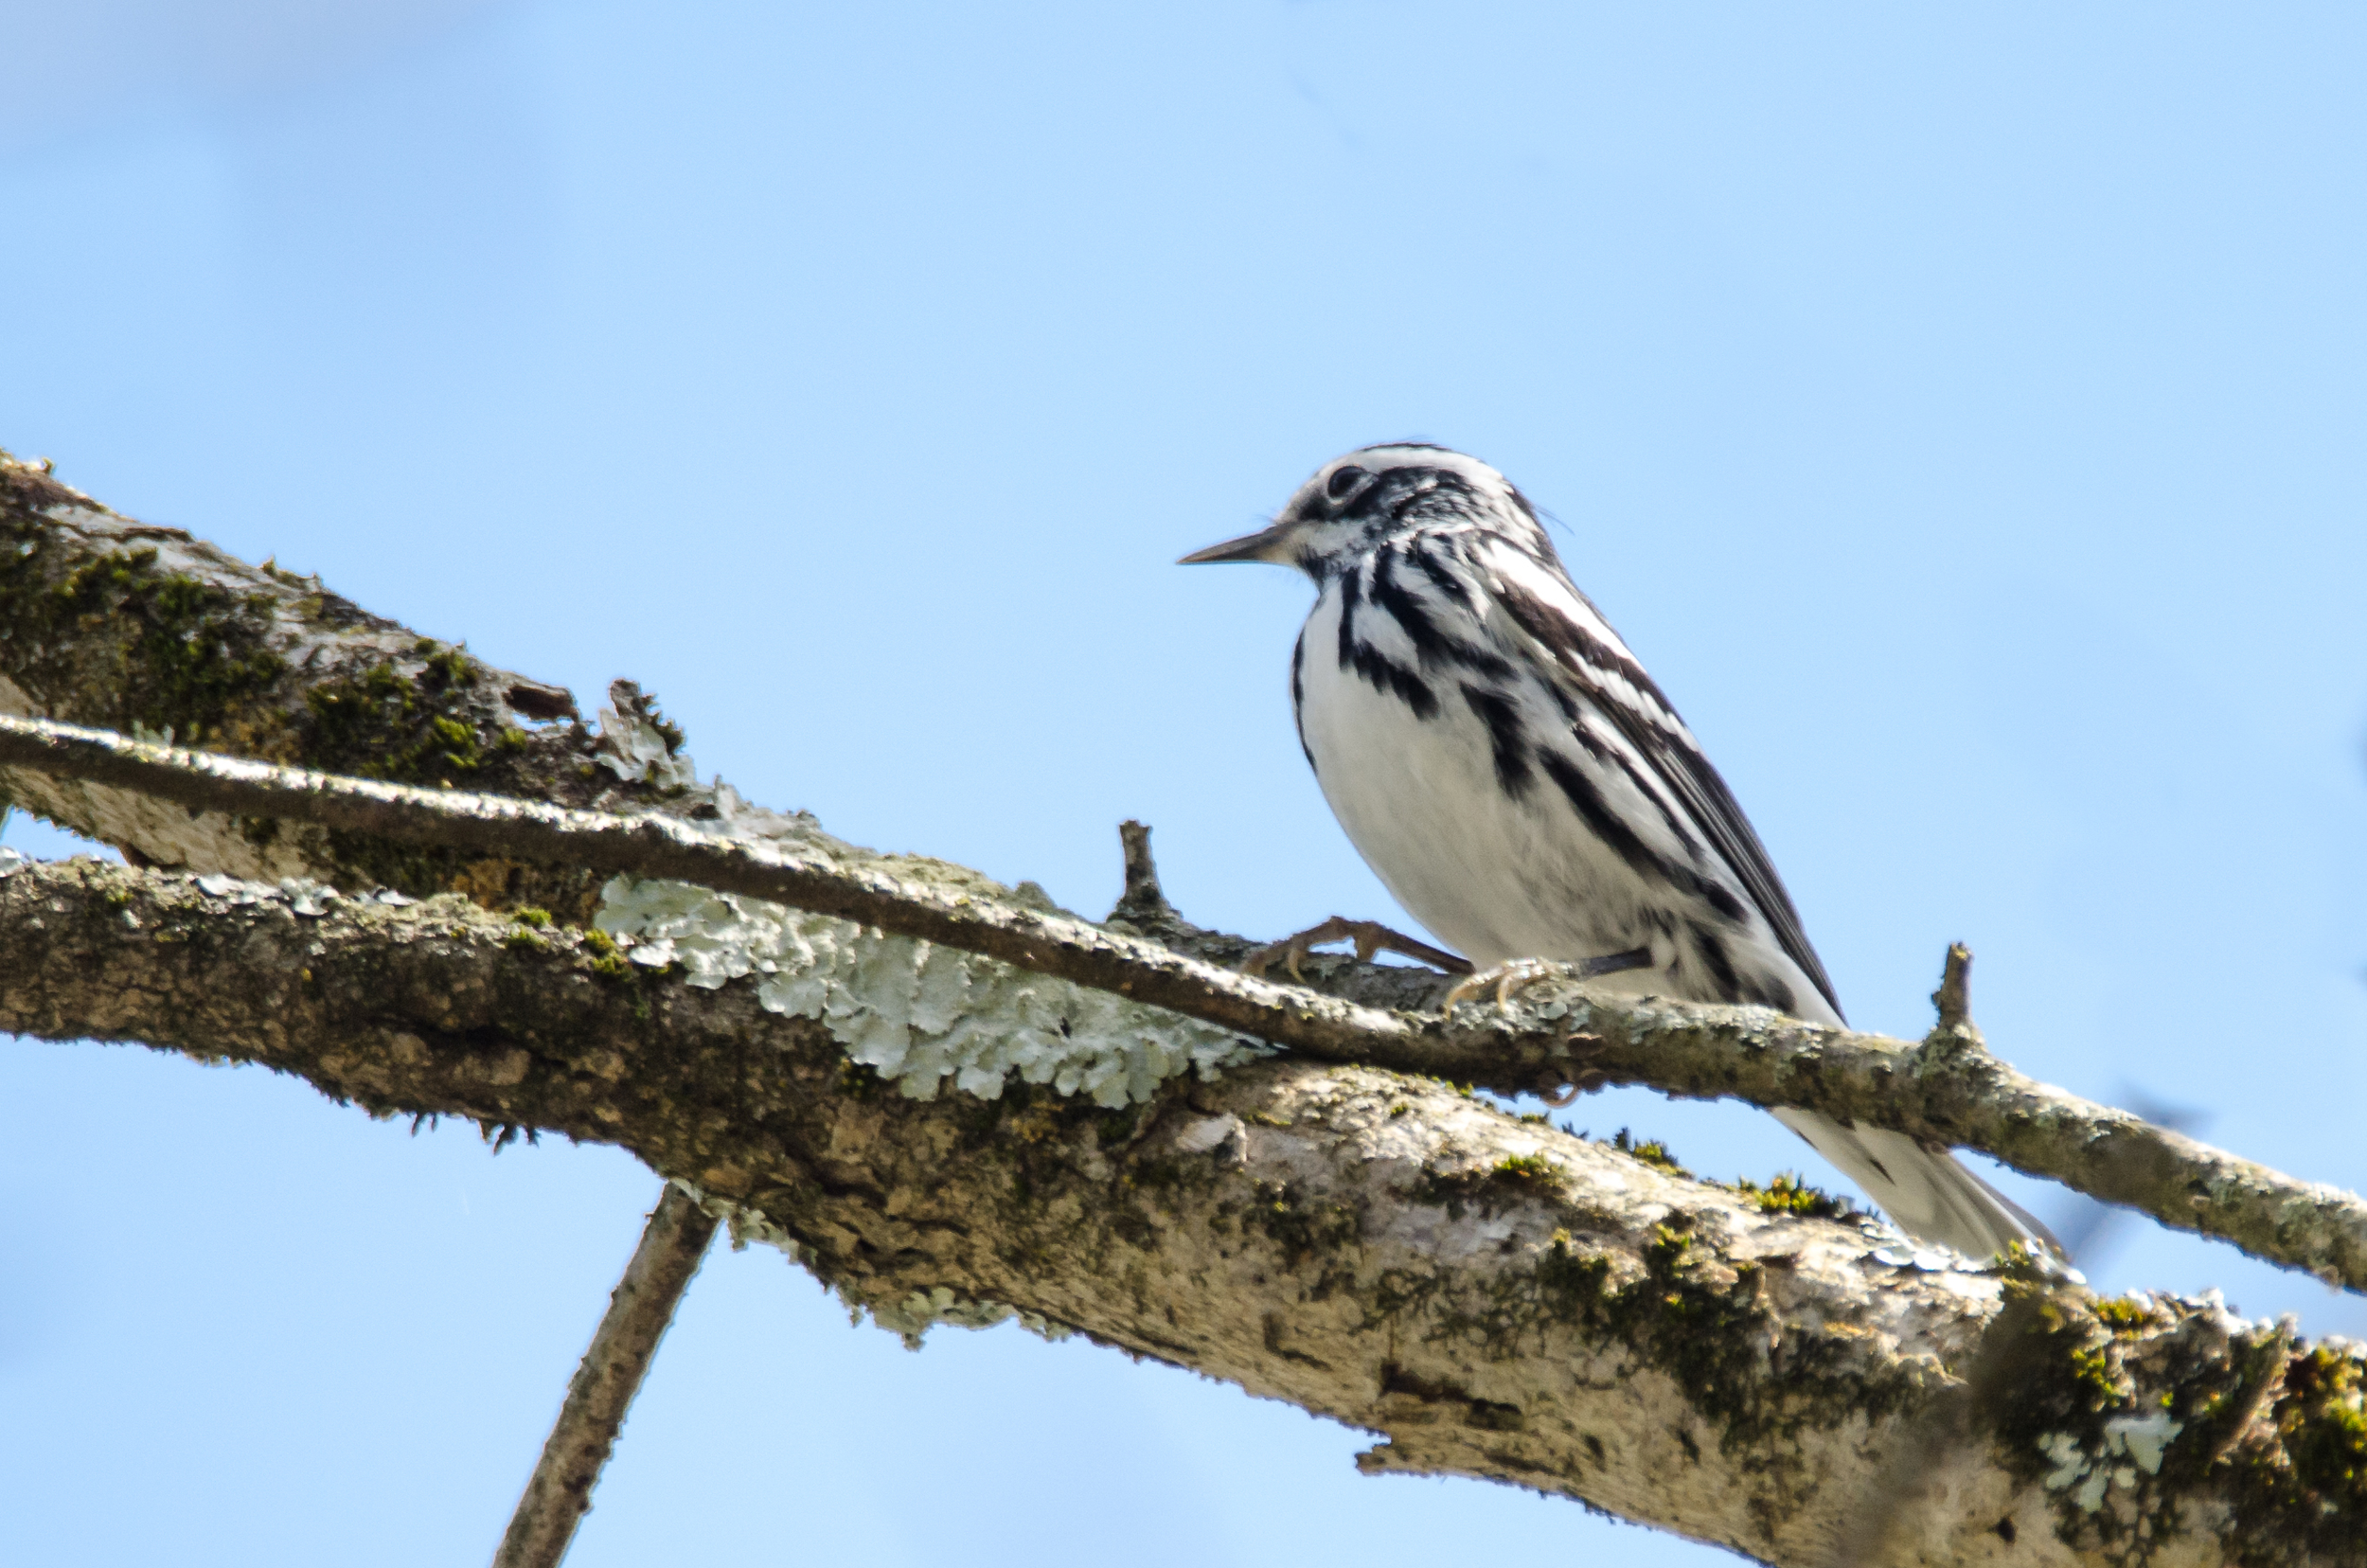 Black-and-White Warbler  Nikon D7000 ISO 450 600mm f/8/0 1/640 sec.